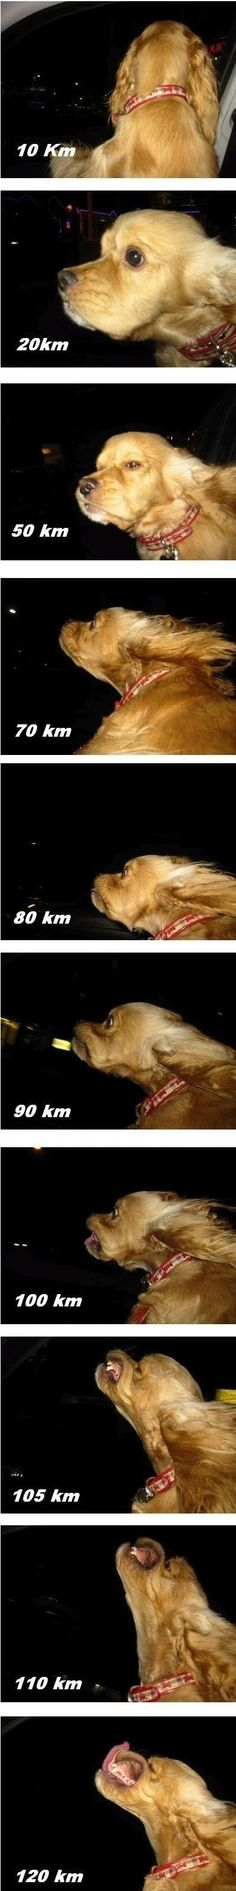 you can always tell how fast youre going by what your dog looks like lol